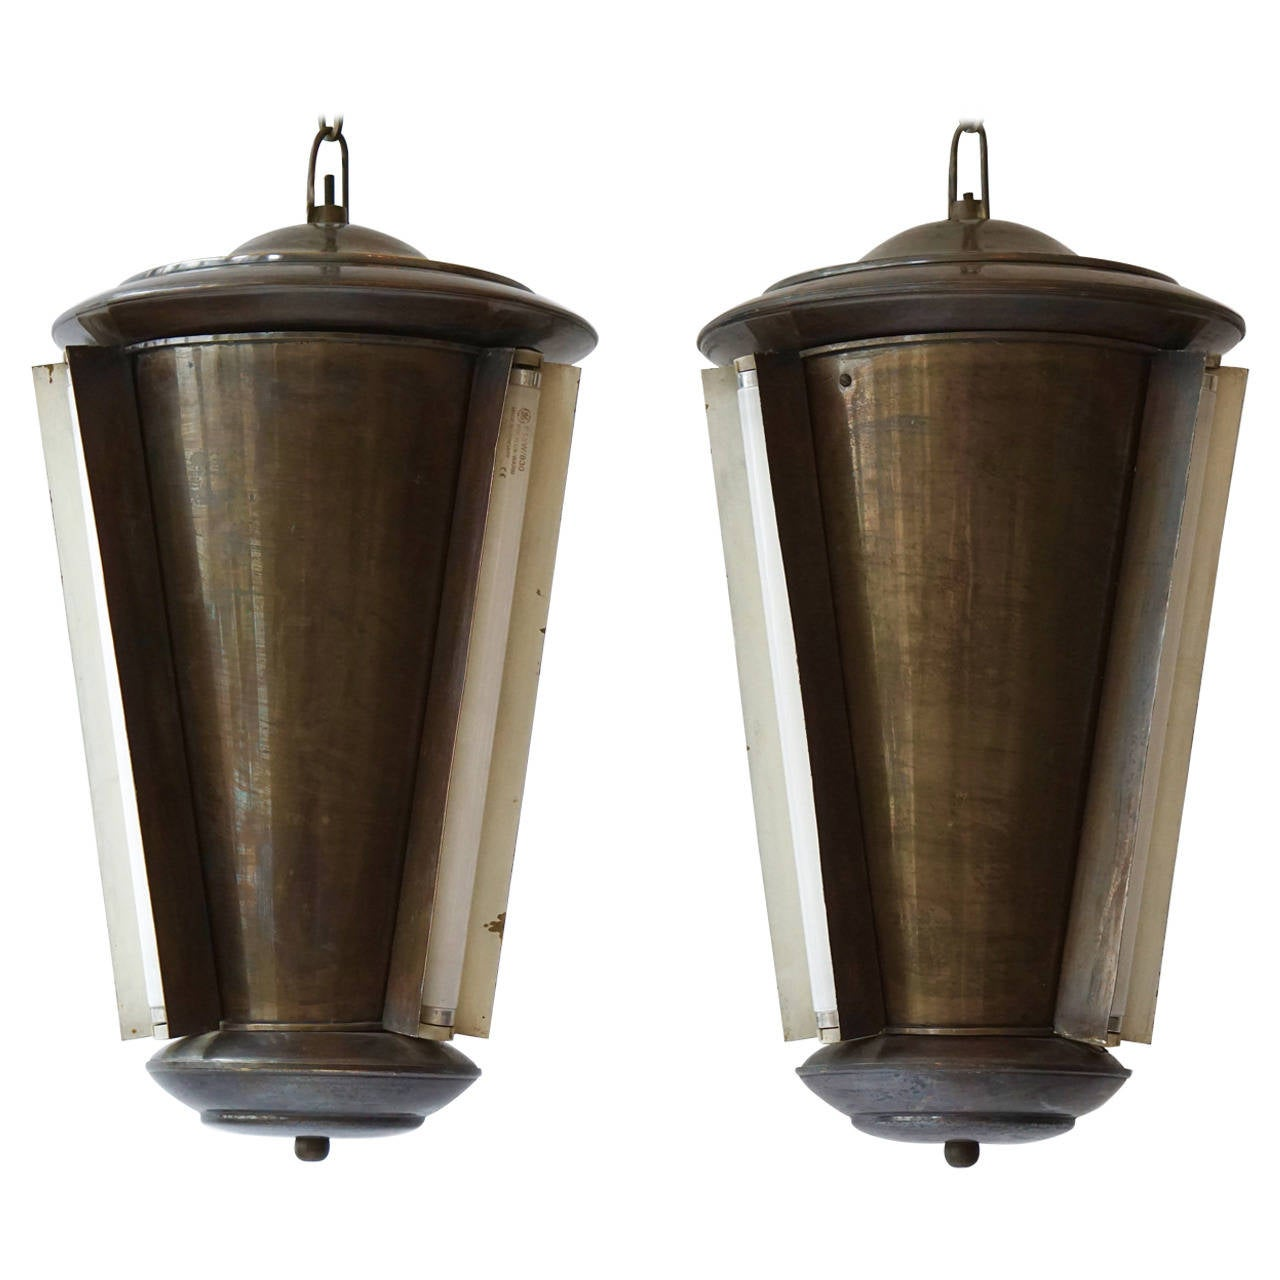 Set of Two Conical Industrial Lights